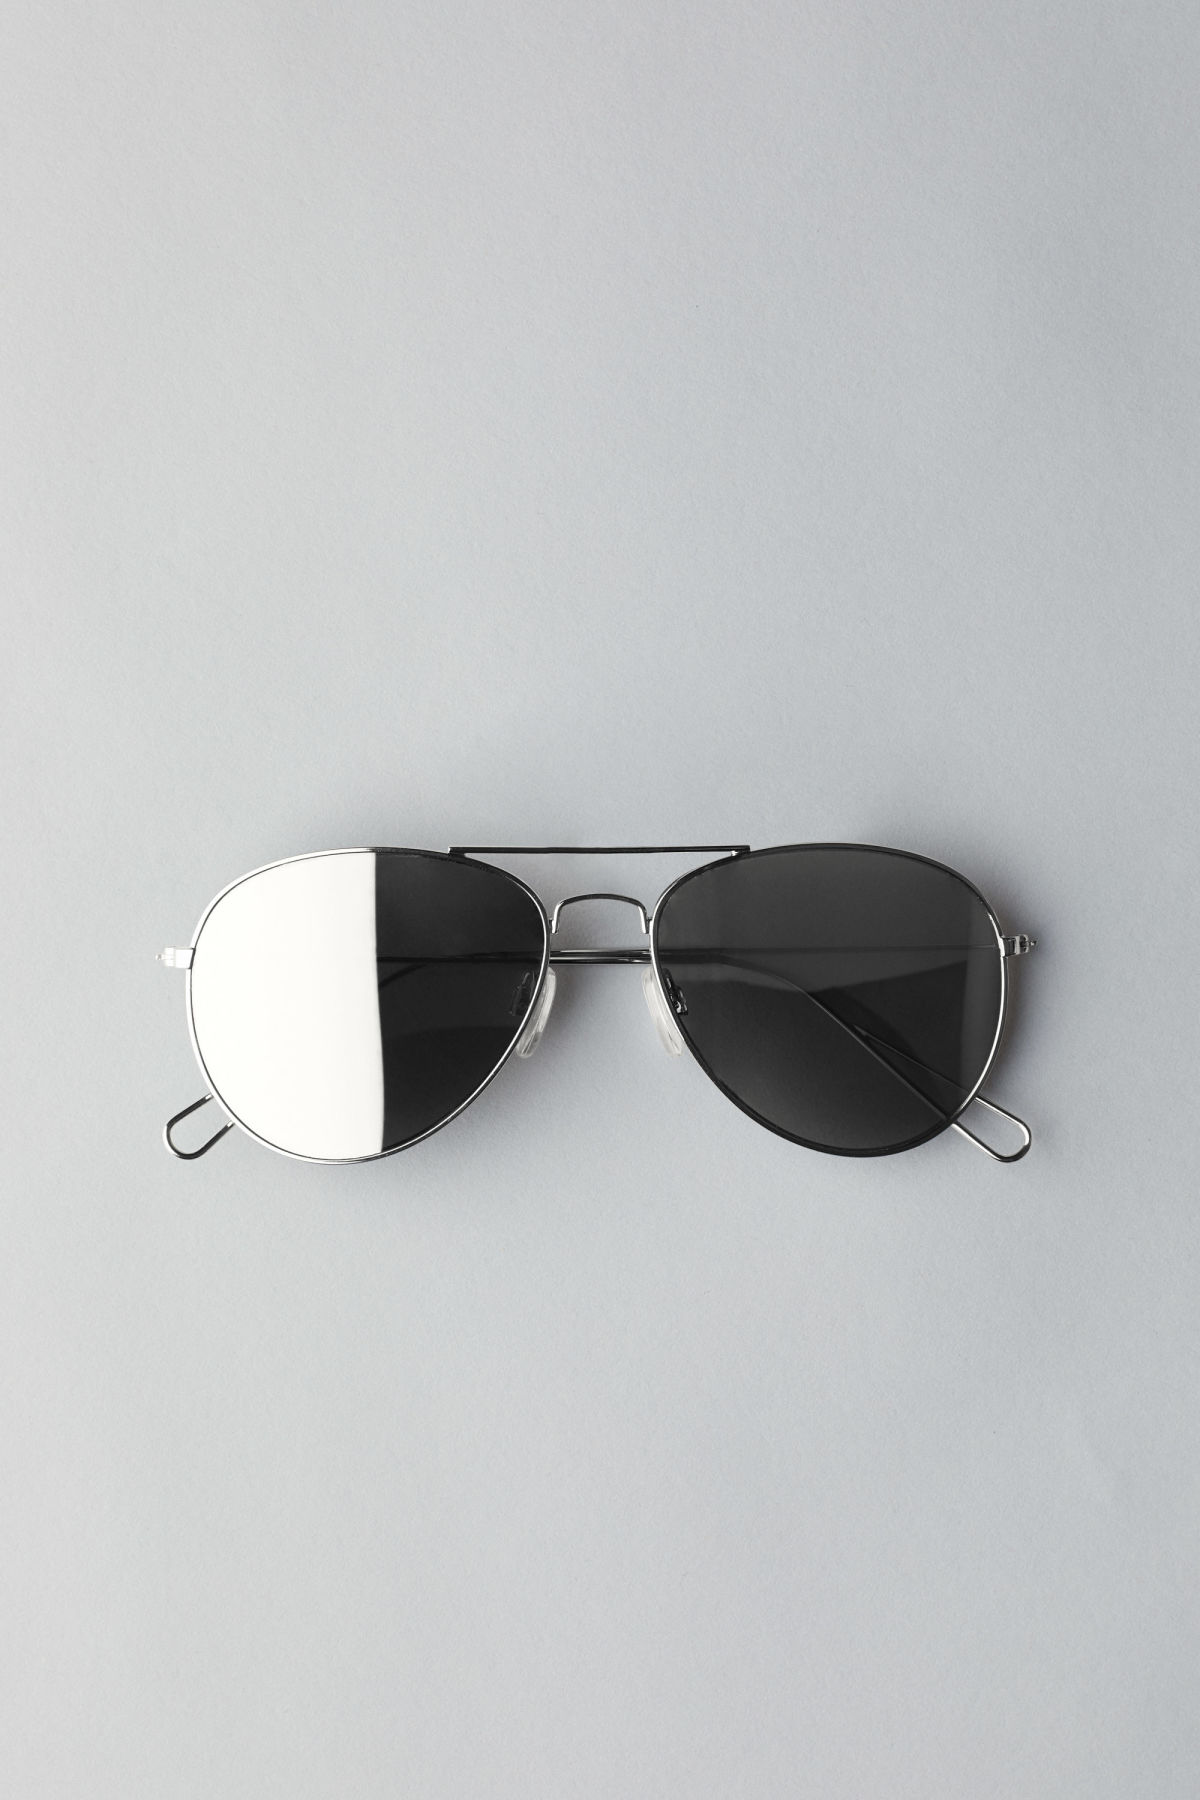 Weekday Tour Aviator Sunglasses - Silver 5m01E71h